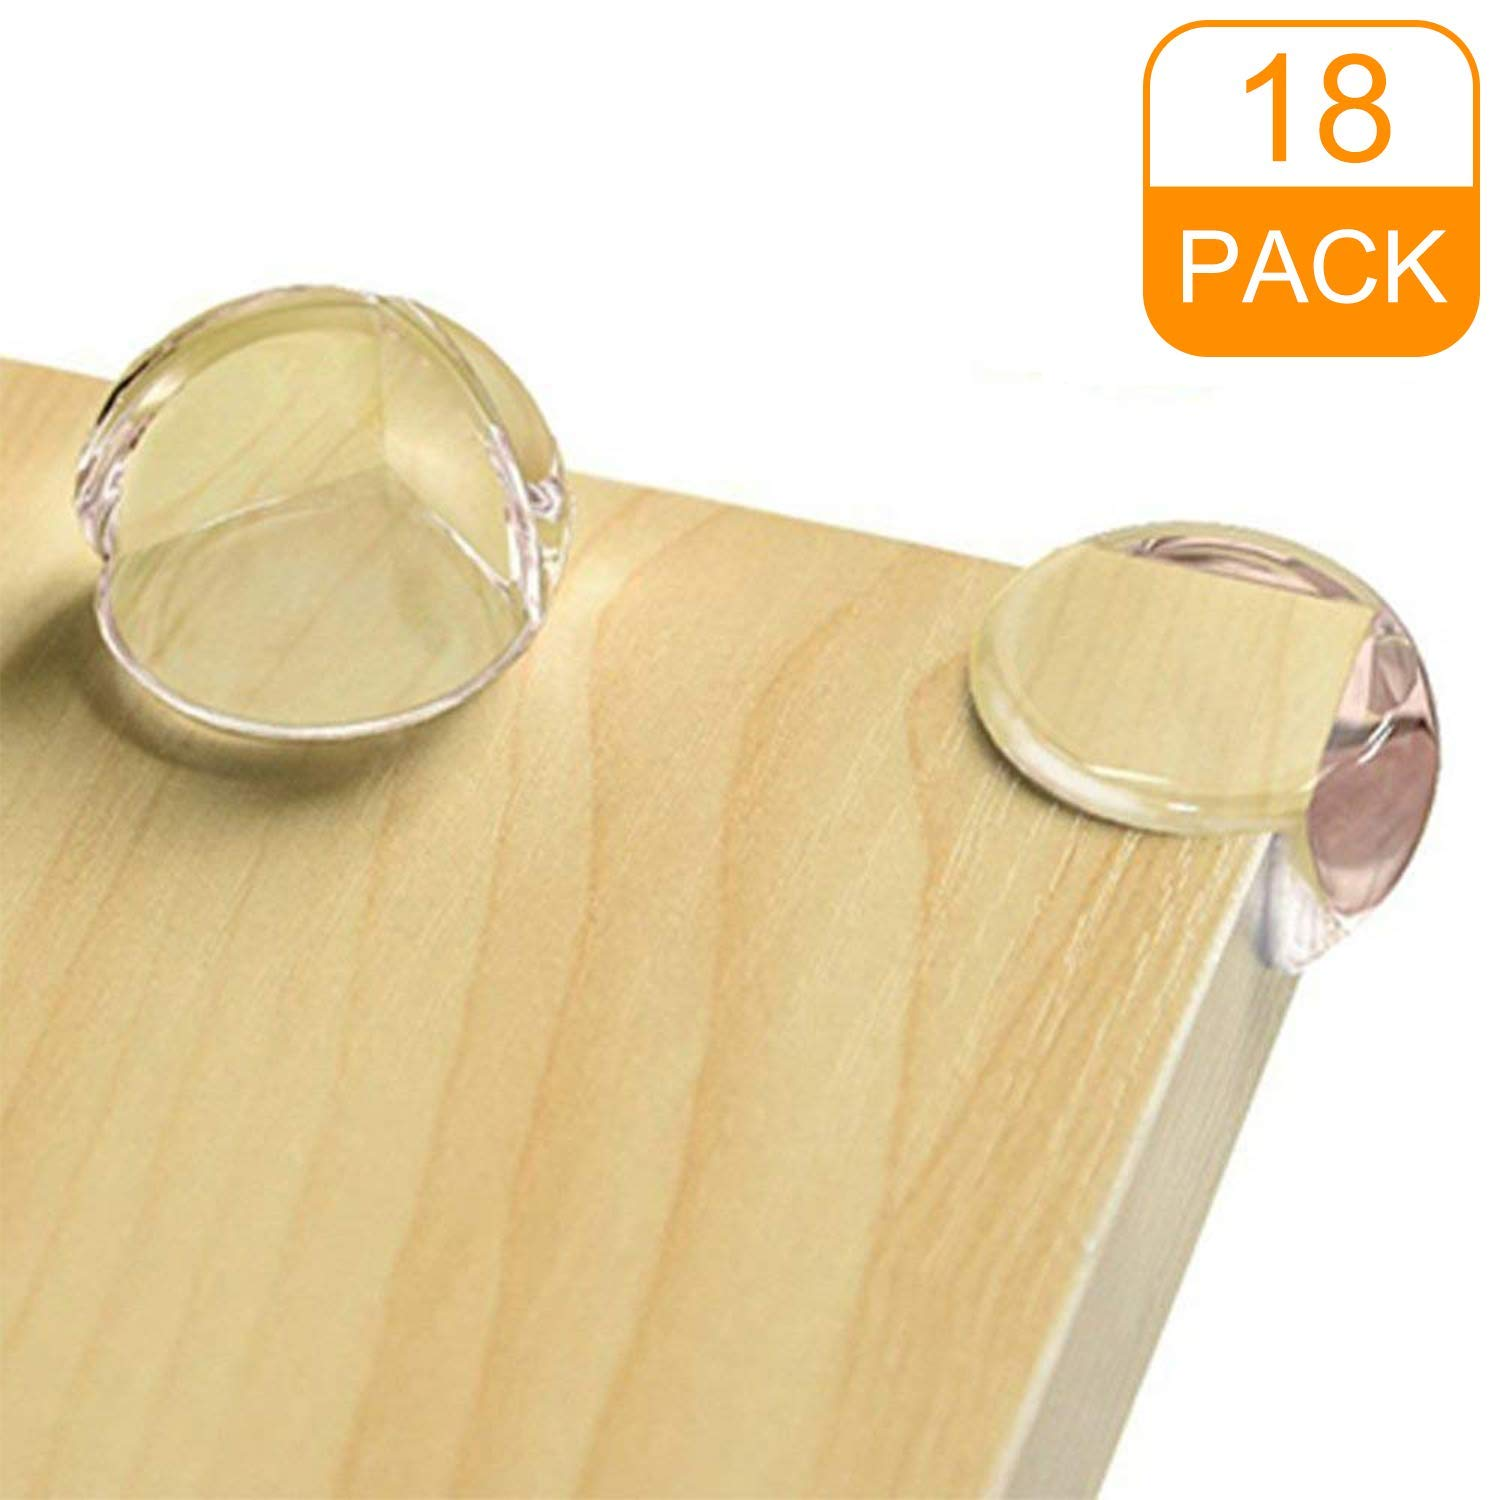 CalMyotis Corner Protectors for Kids Keep Baby Safety 12 Packs Baby Proofing Corners with Strong Adhesive Tape Protectors for Furniture Against Sharp Corners